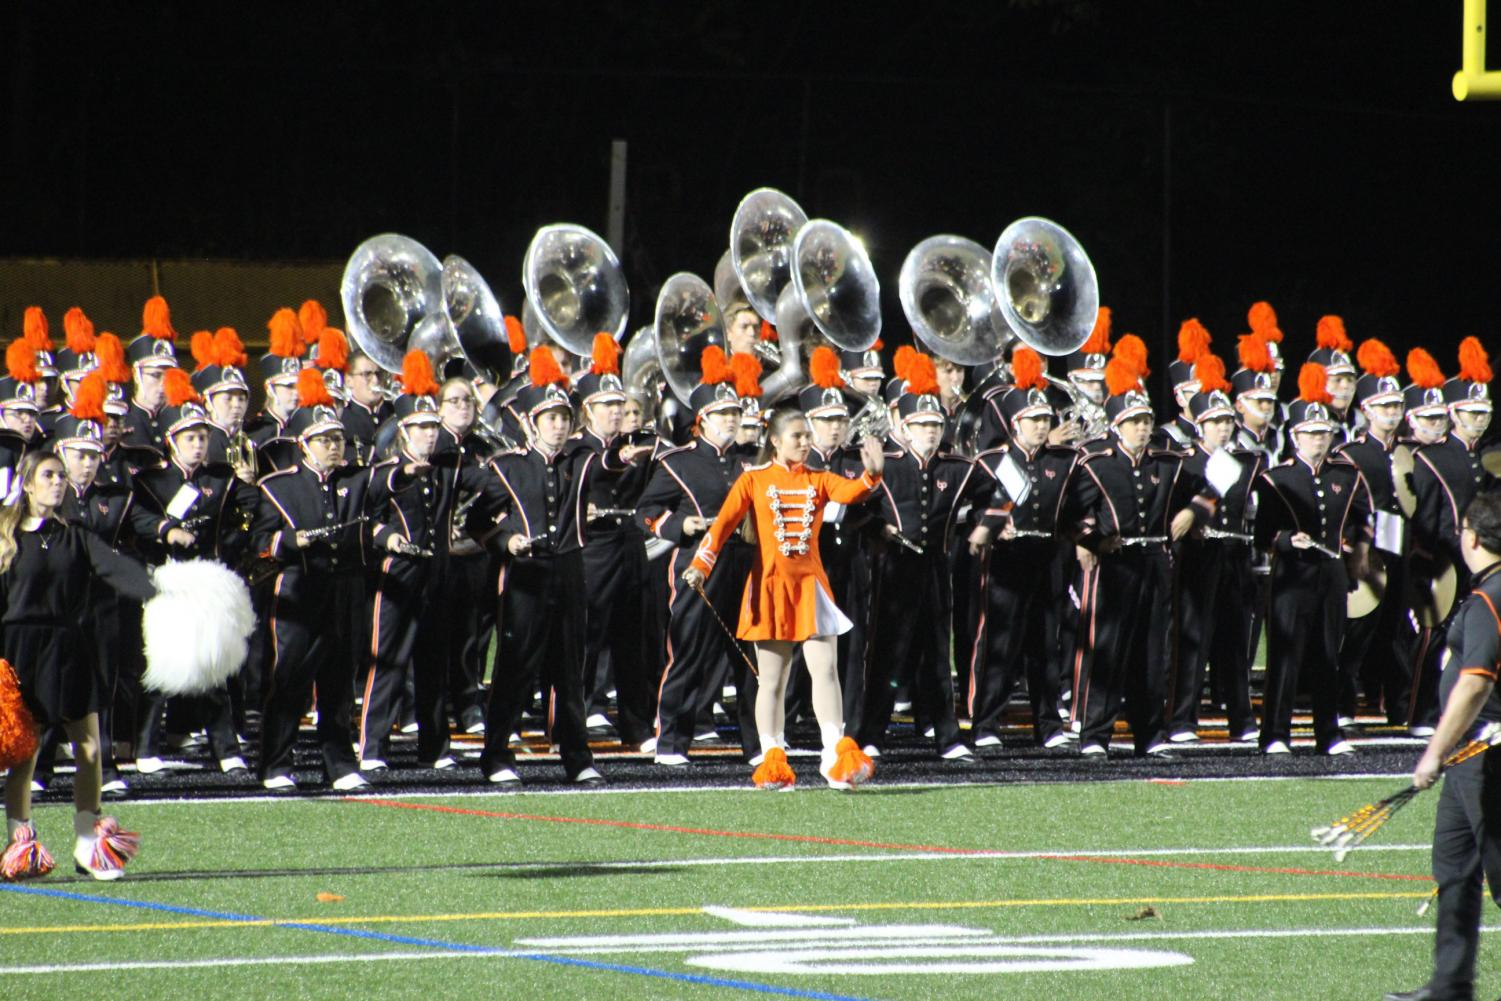 INSTRUMENTS RAISED, the Marching Band steps onto the field during halftime of a Hawks football game.